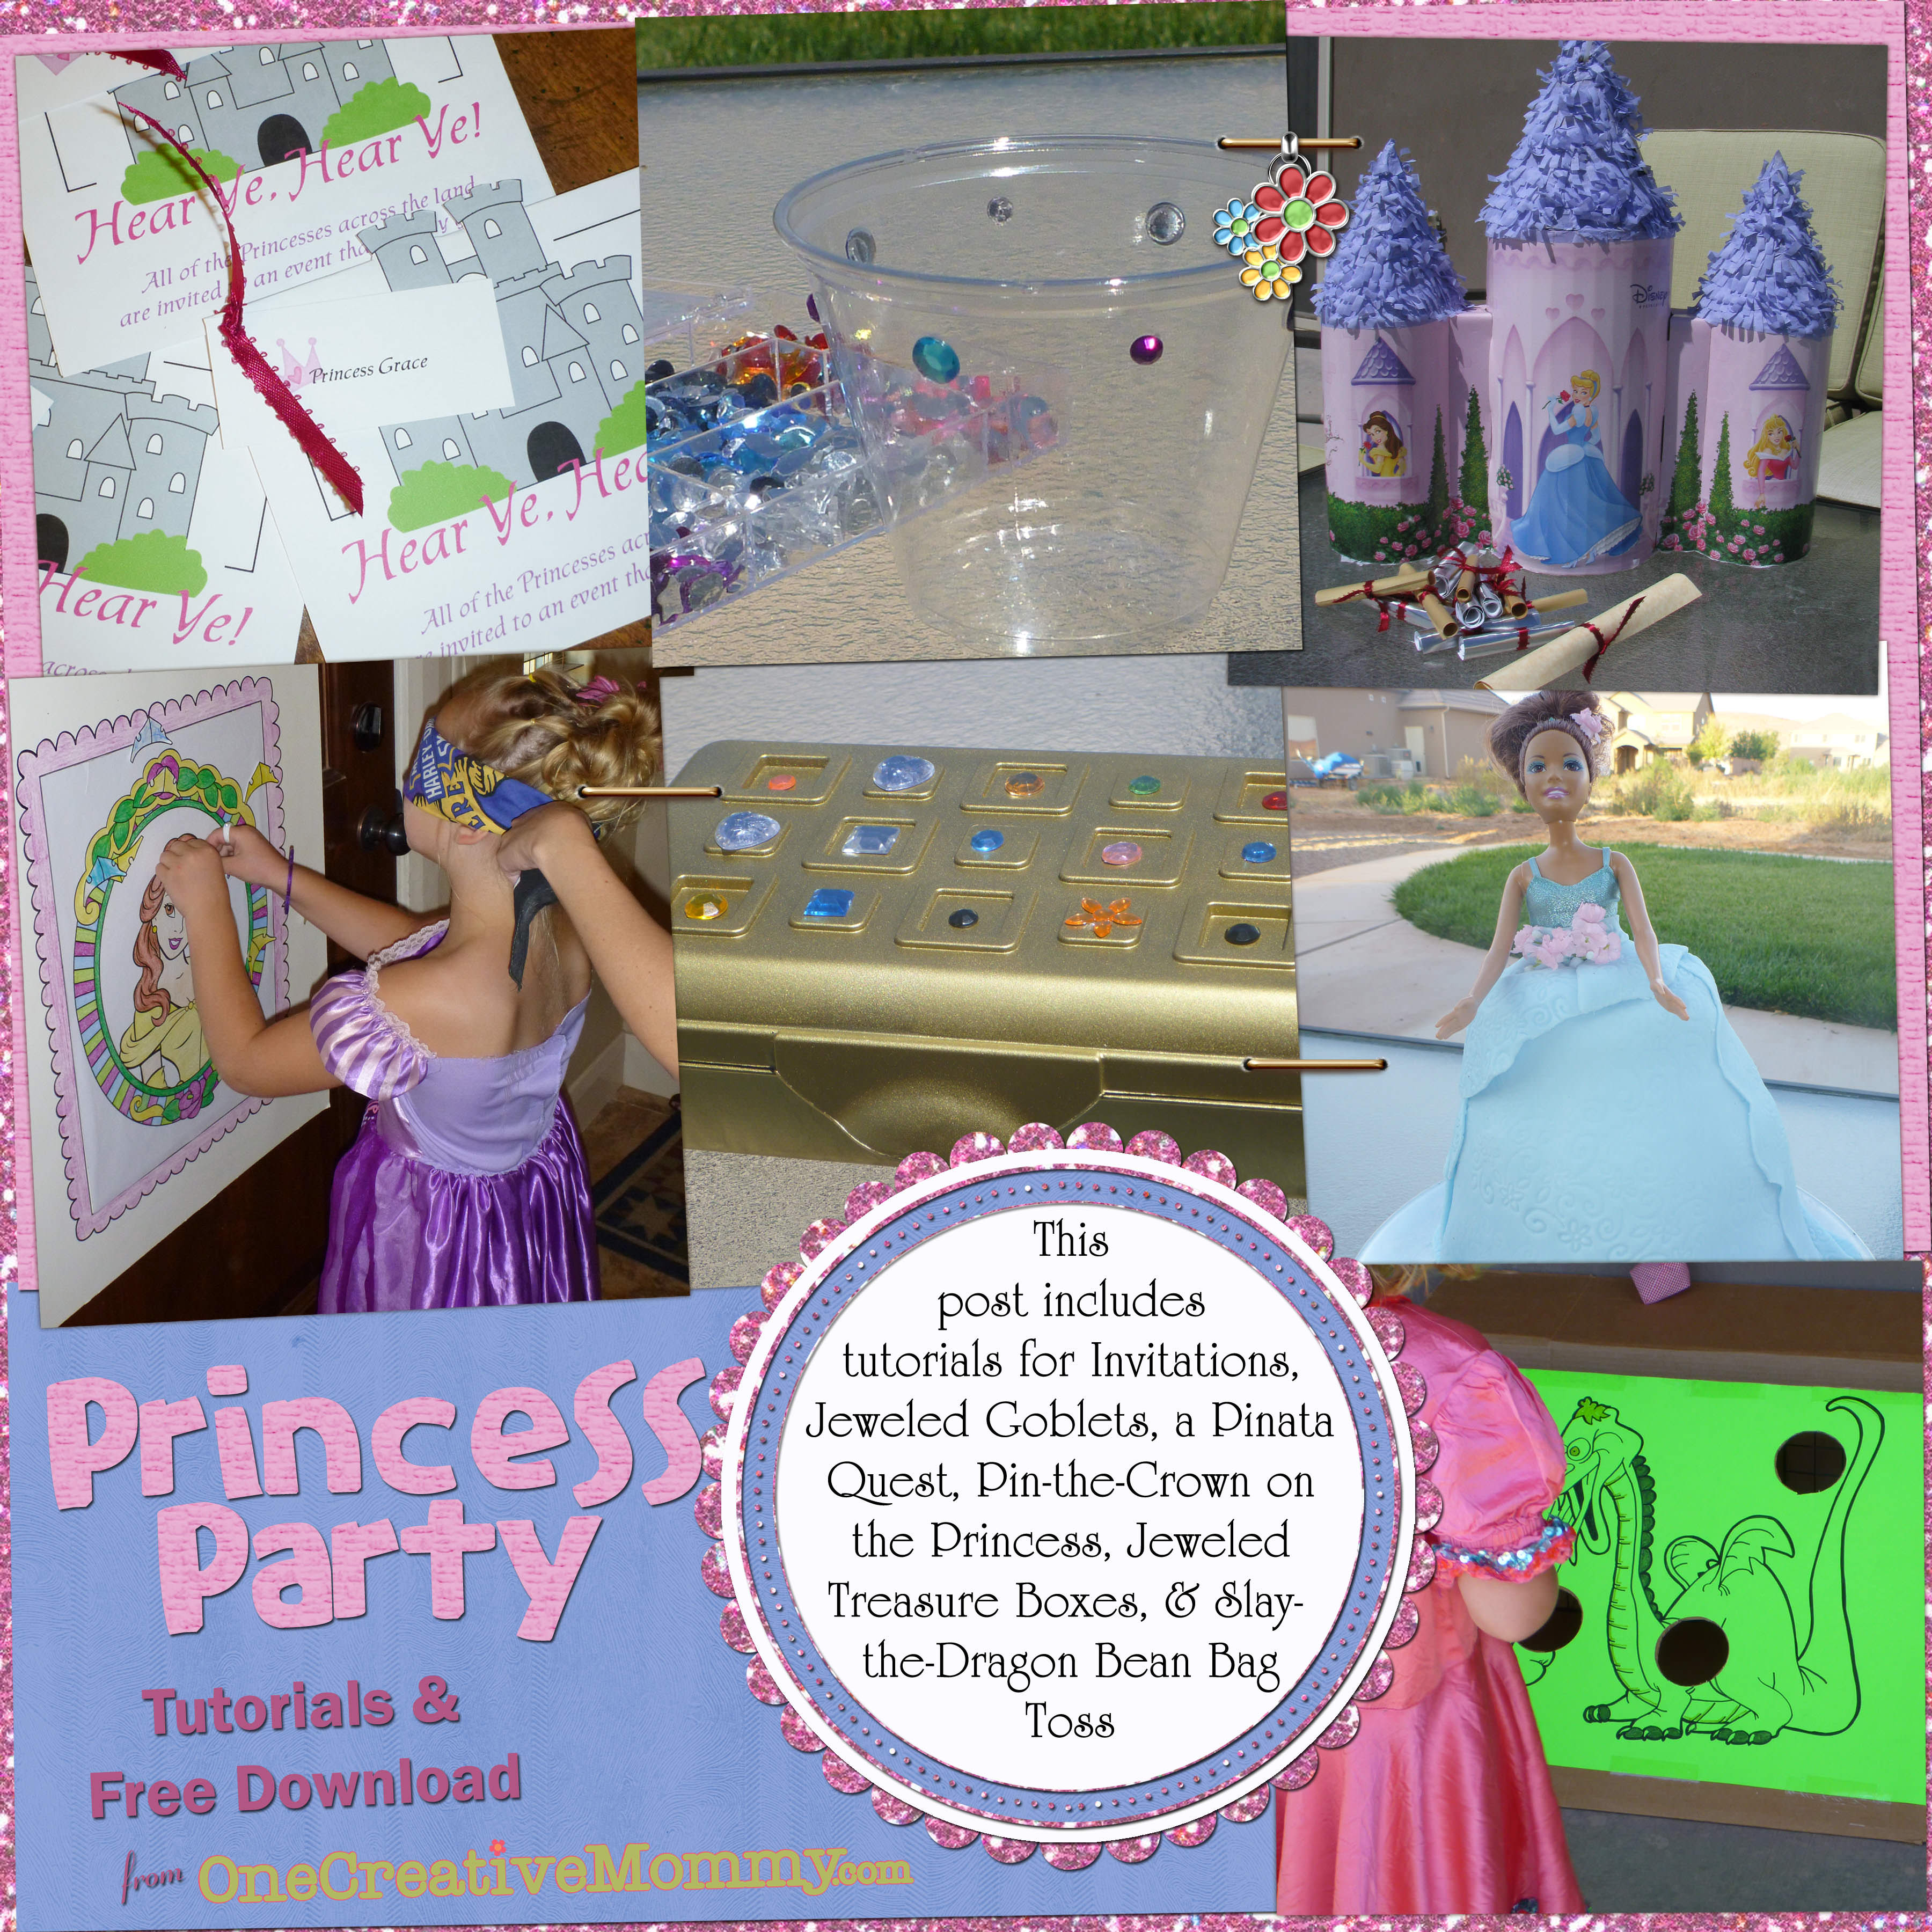 Princess Party Project Tutorials and Downloads